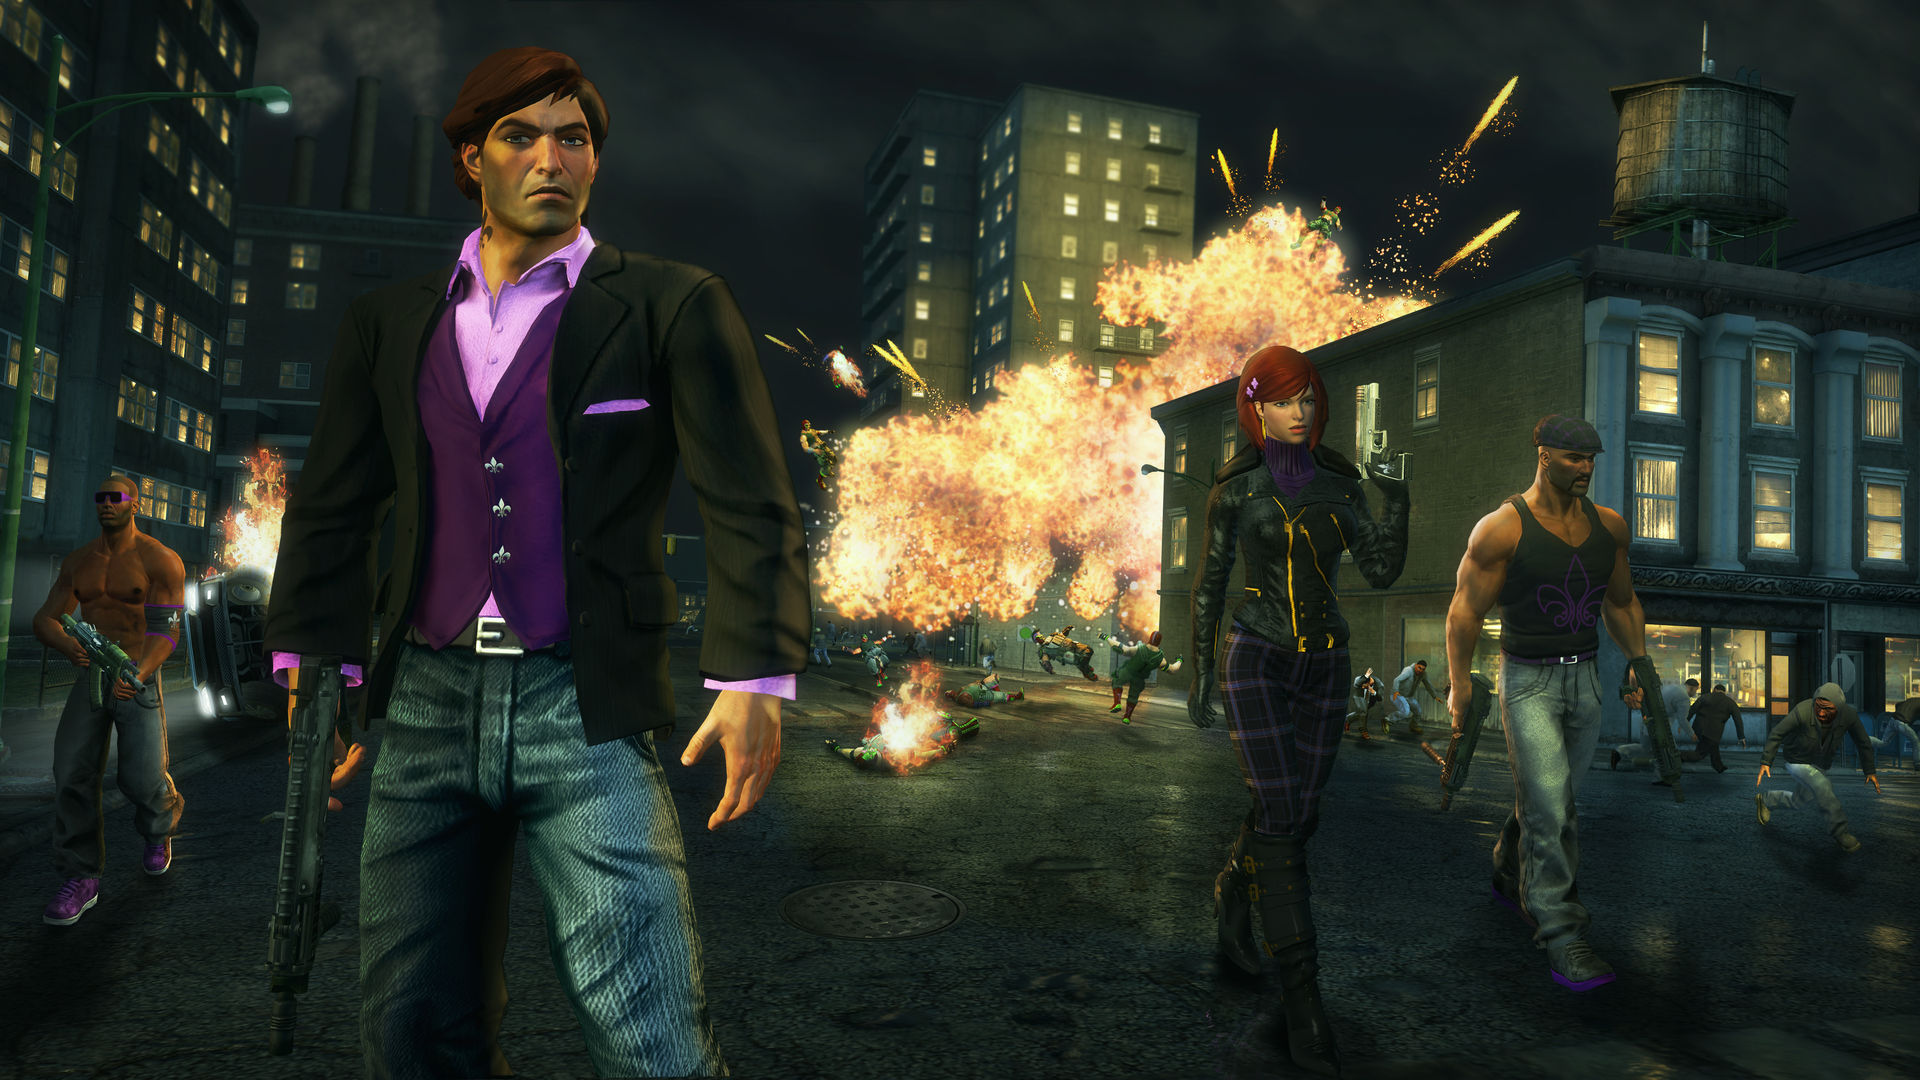 Saints Row: The Third - The Full Package [Steam Gift]